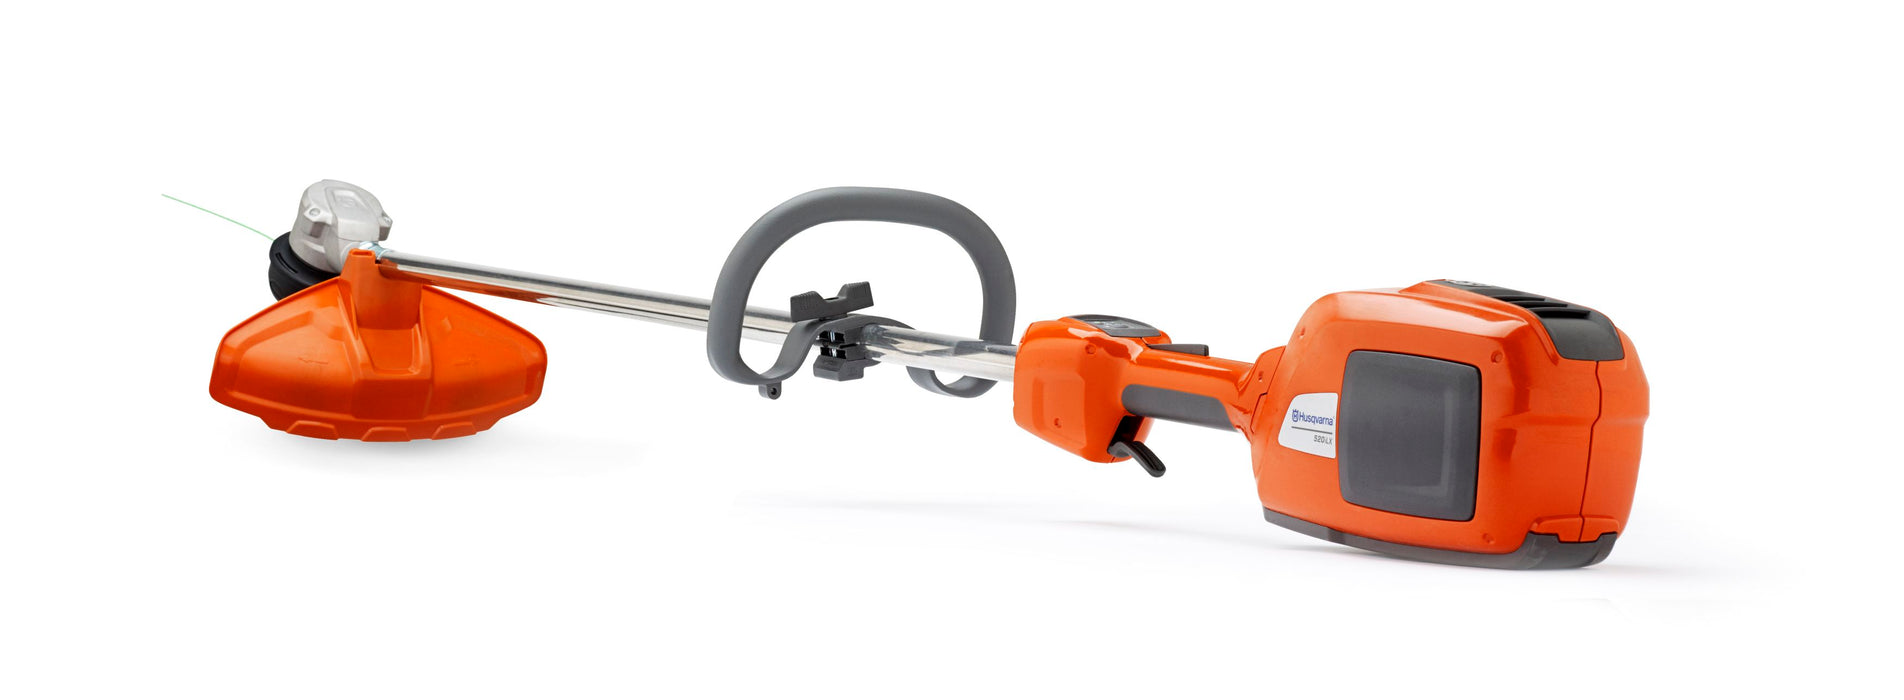 HUSQVARNA 520iLX Grass trimmer - Mincost